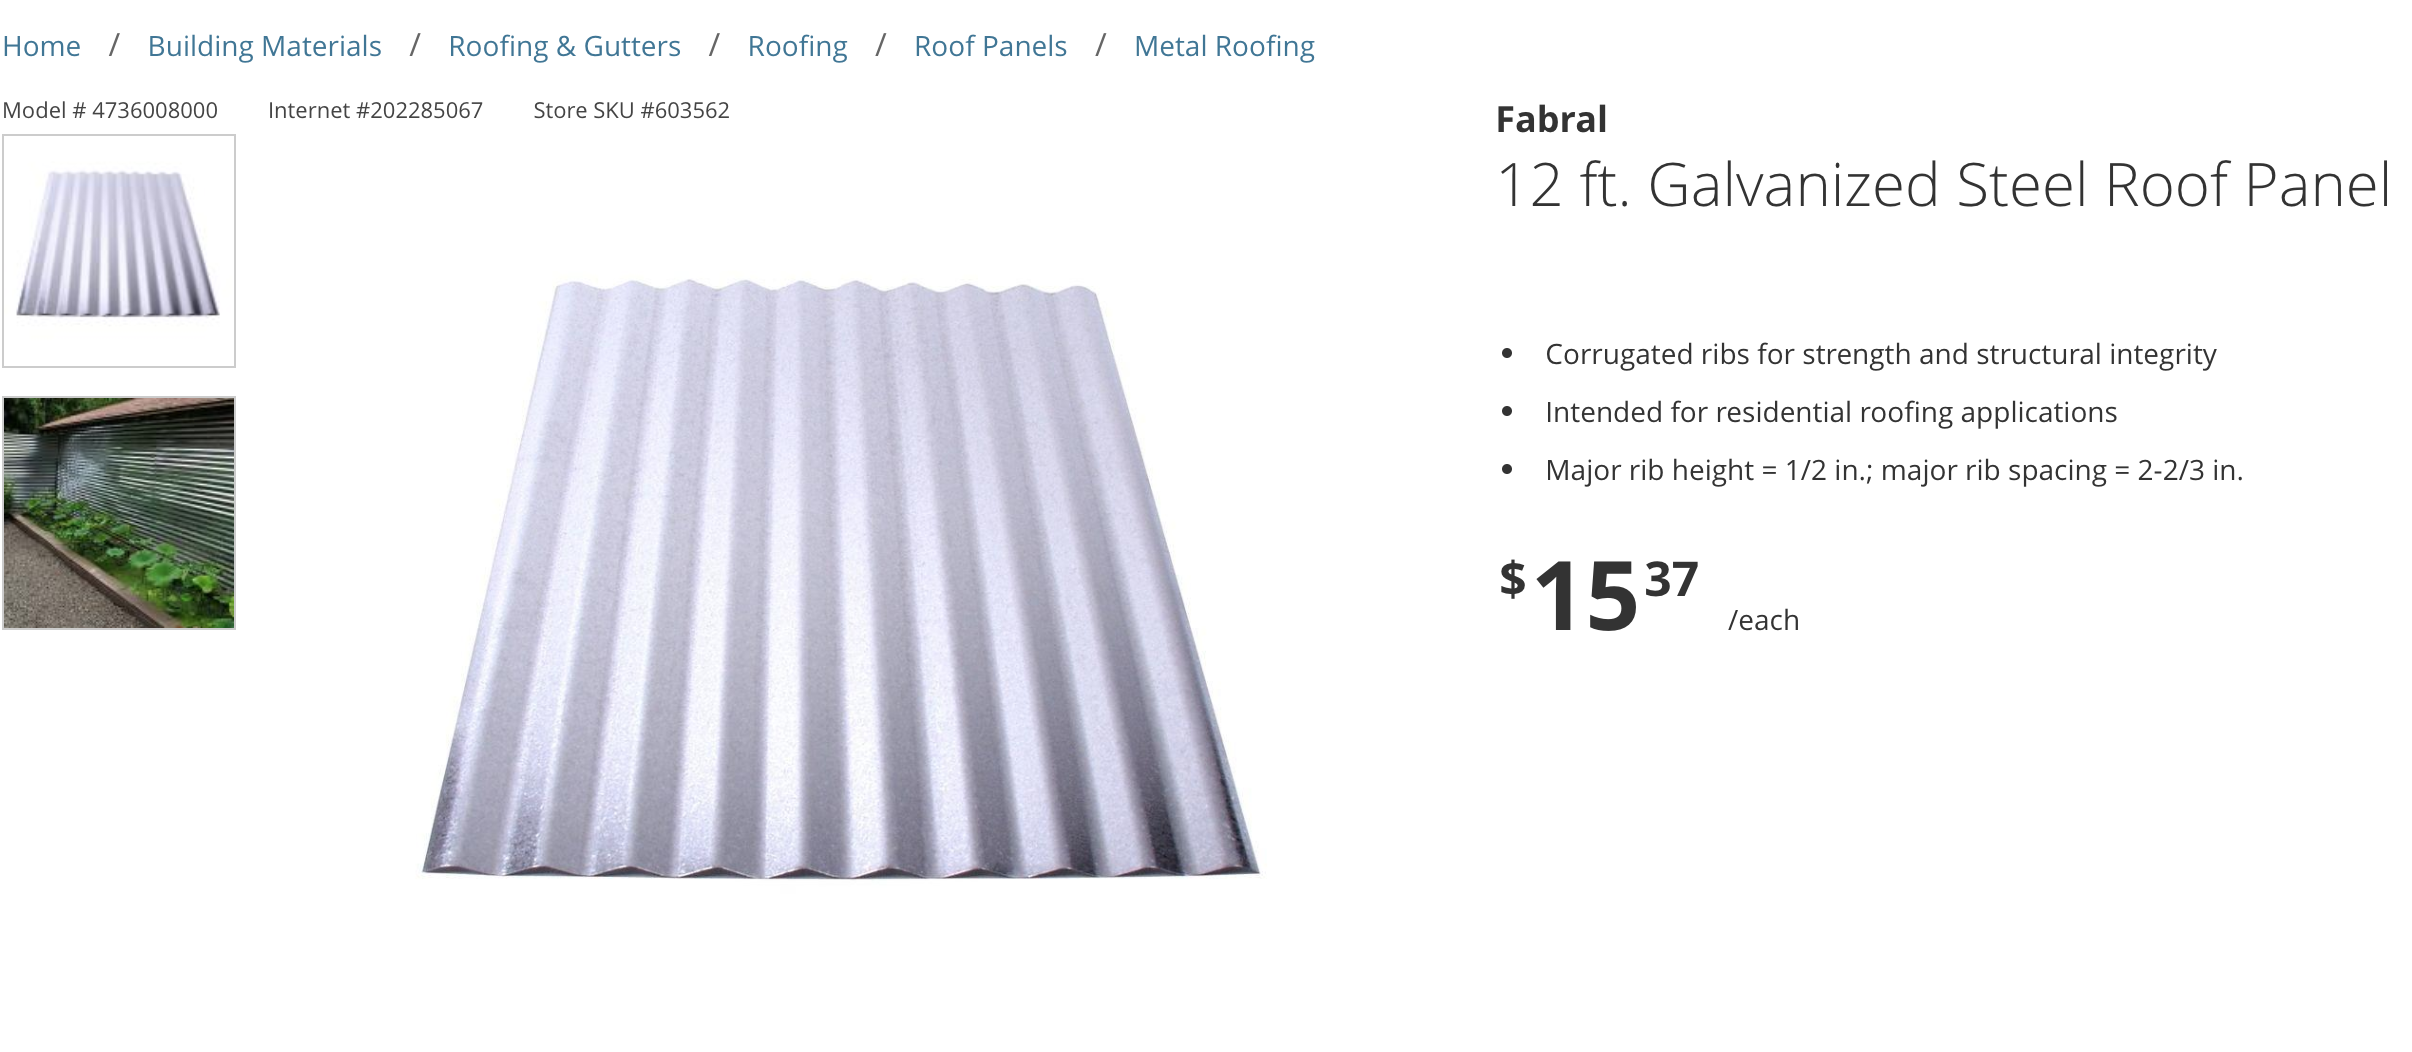 Fabral 12 Ft Galvanized Steel Roof Panel 4736008000 The Home Depot Steel Roof Panels Roof Panels Galvanized Metal Roof